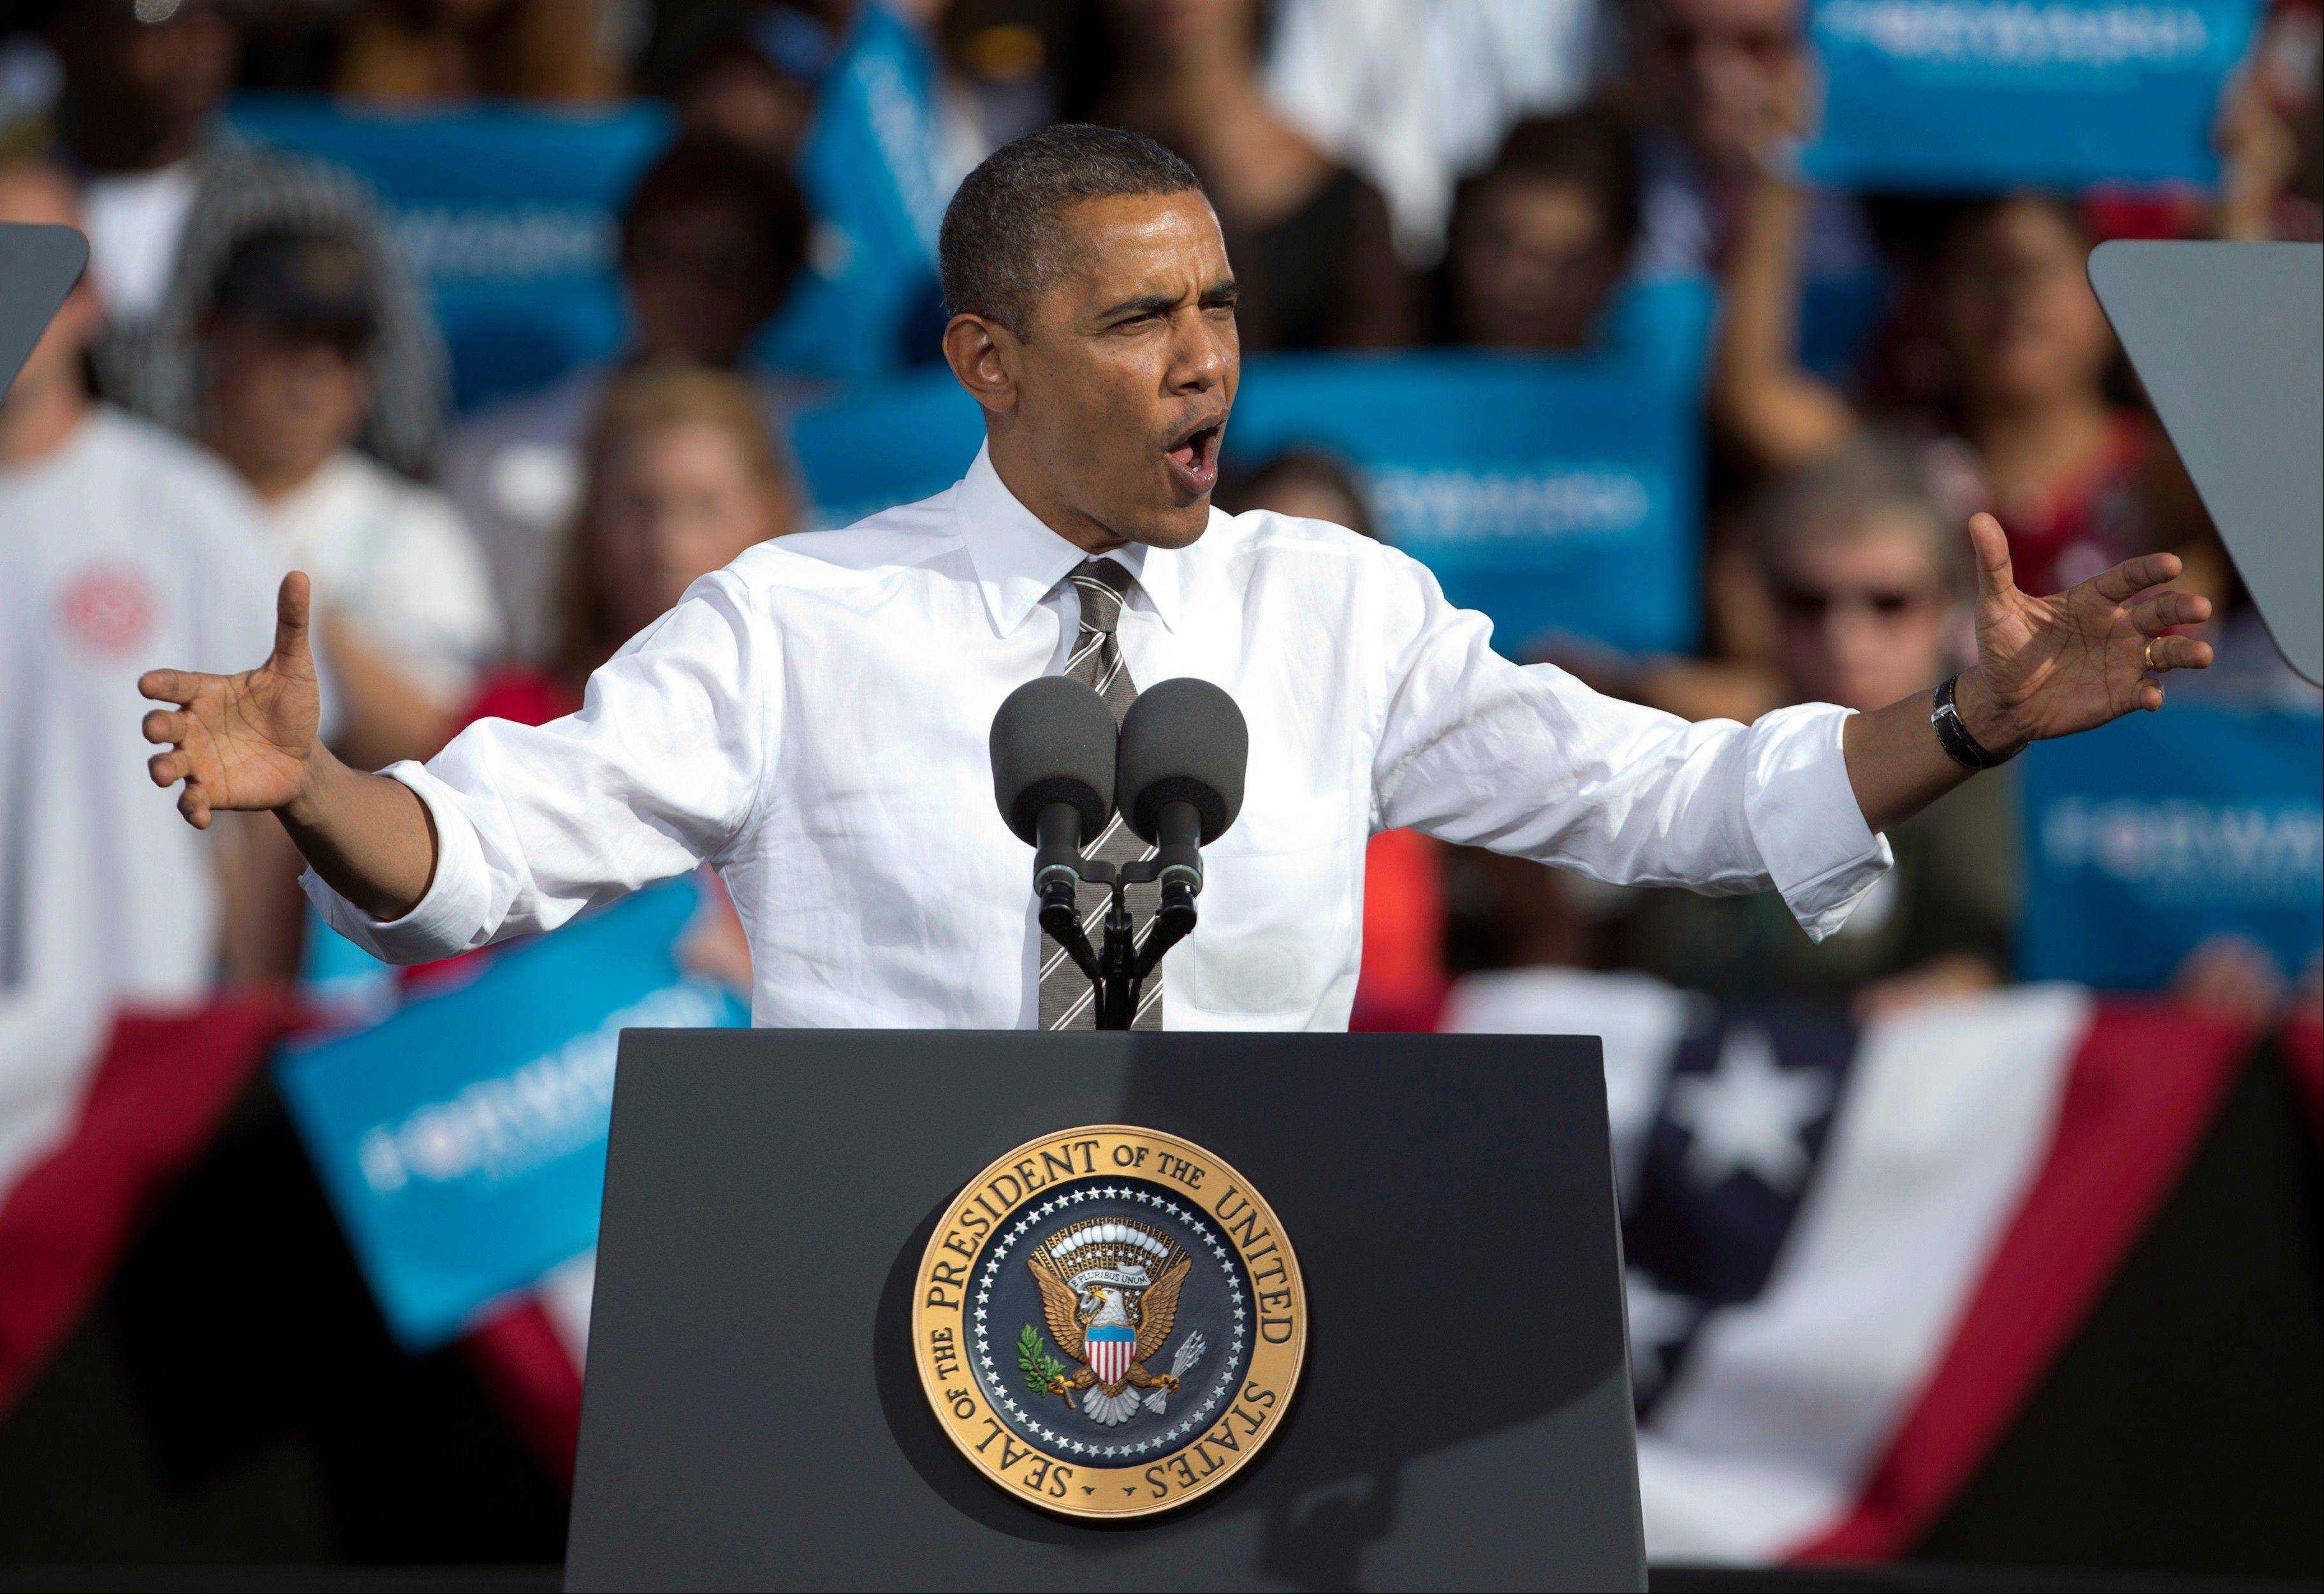 President Barack Obama speaks Thursday during a campaign eventat the Cheyenne Sports Complex in Las Vegas.